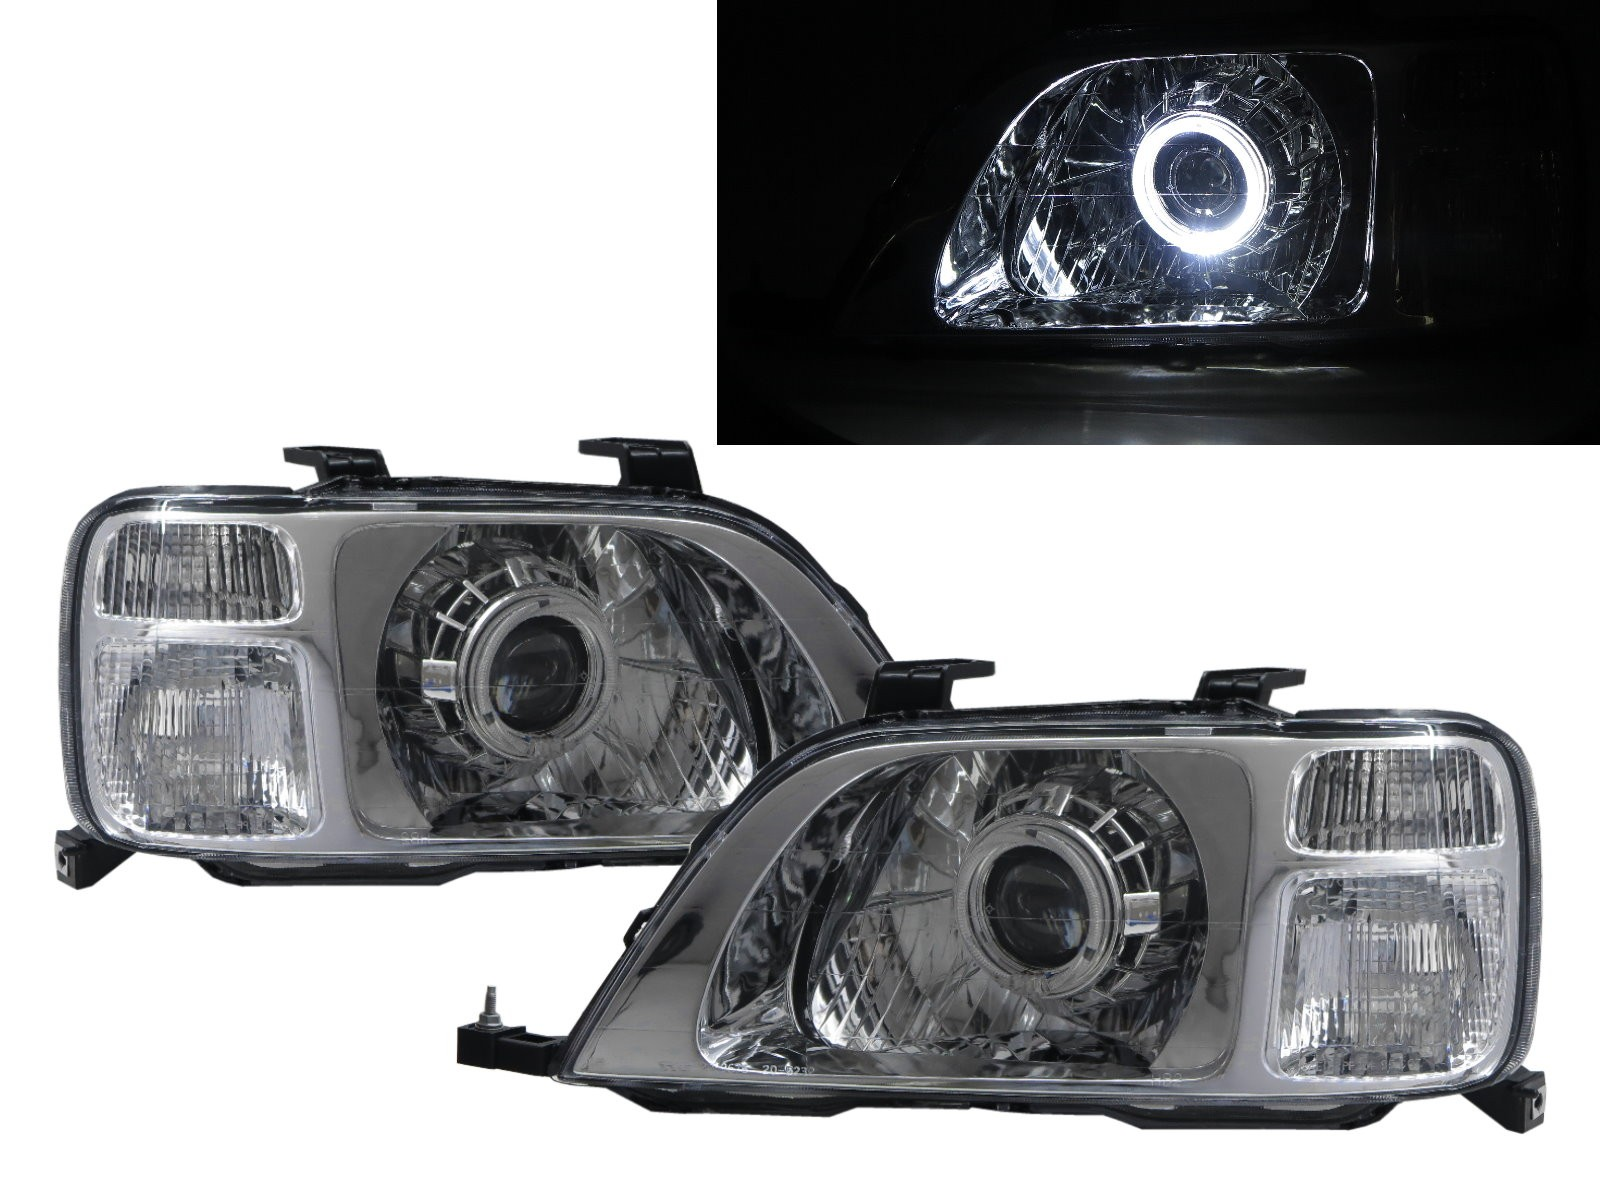 CrazyTheGod CR-V CRV RD1-RD3 First generation 1996-2001 SUV 5D Guide LED Angel-Eye Projector Headlight Headlamp Chrome for HONDA LHD